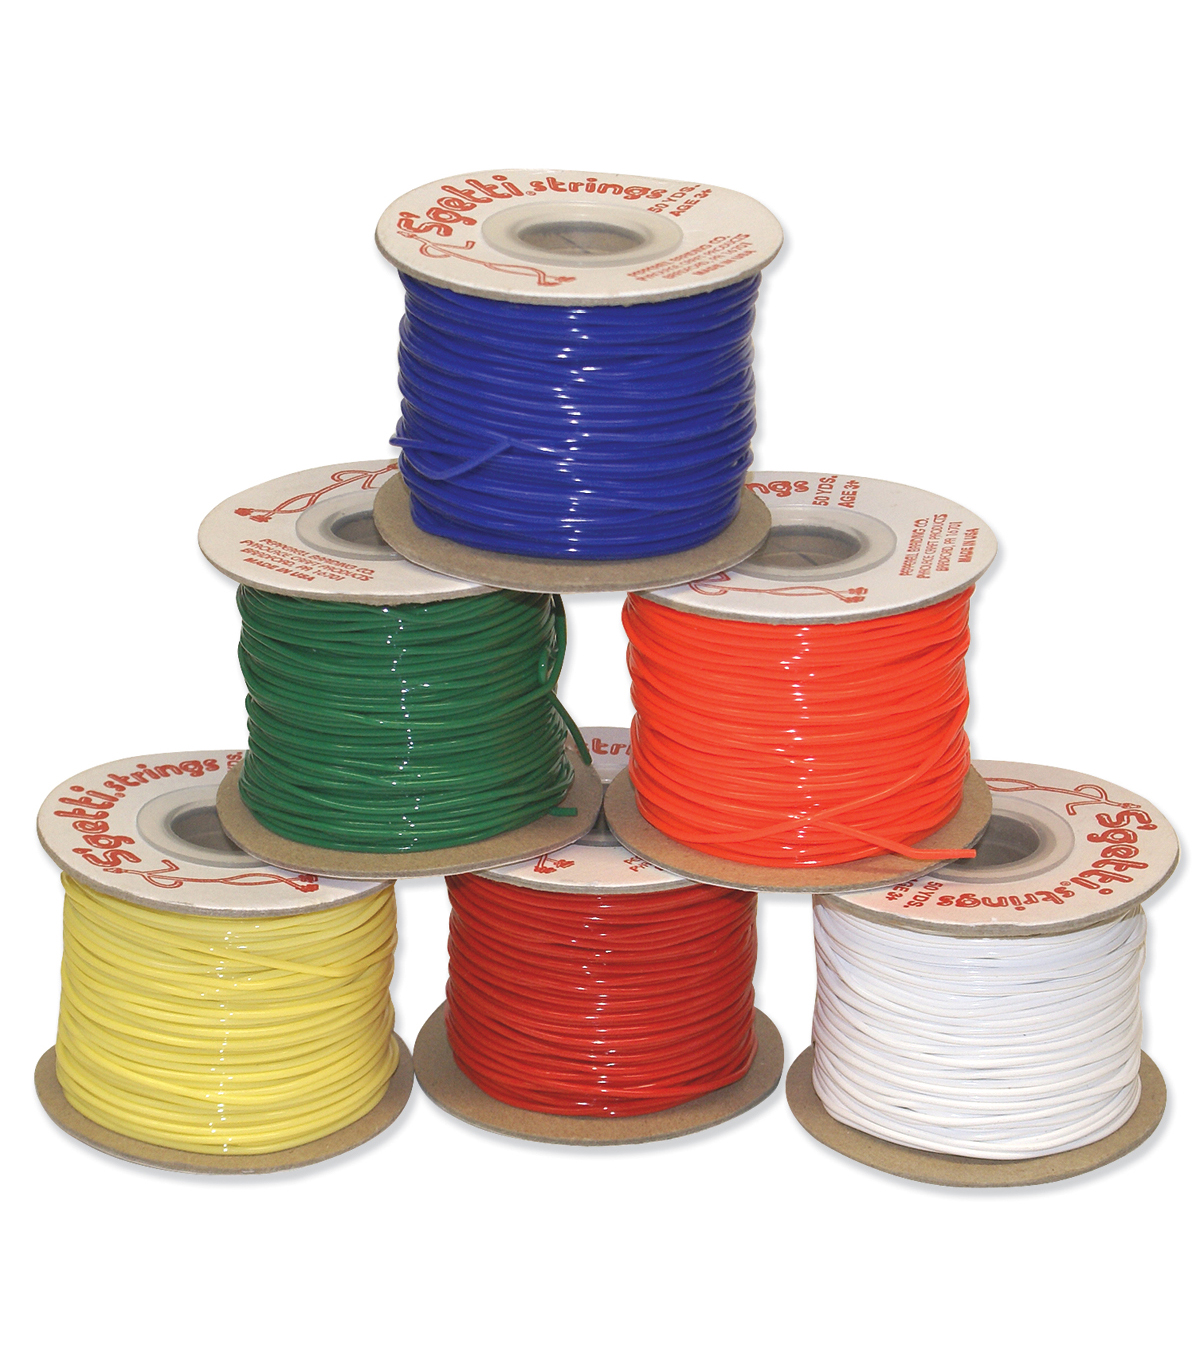 Pepperell S'getti String 50 Yards/Spool